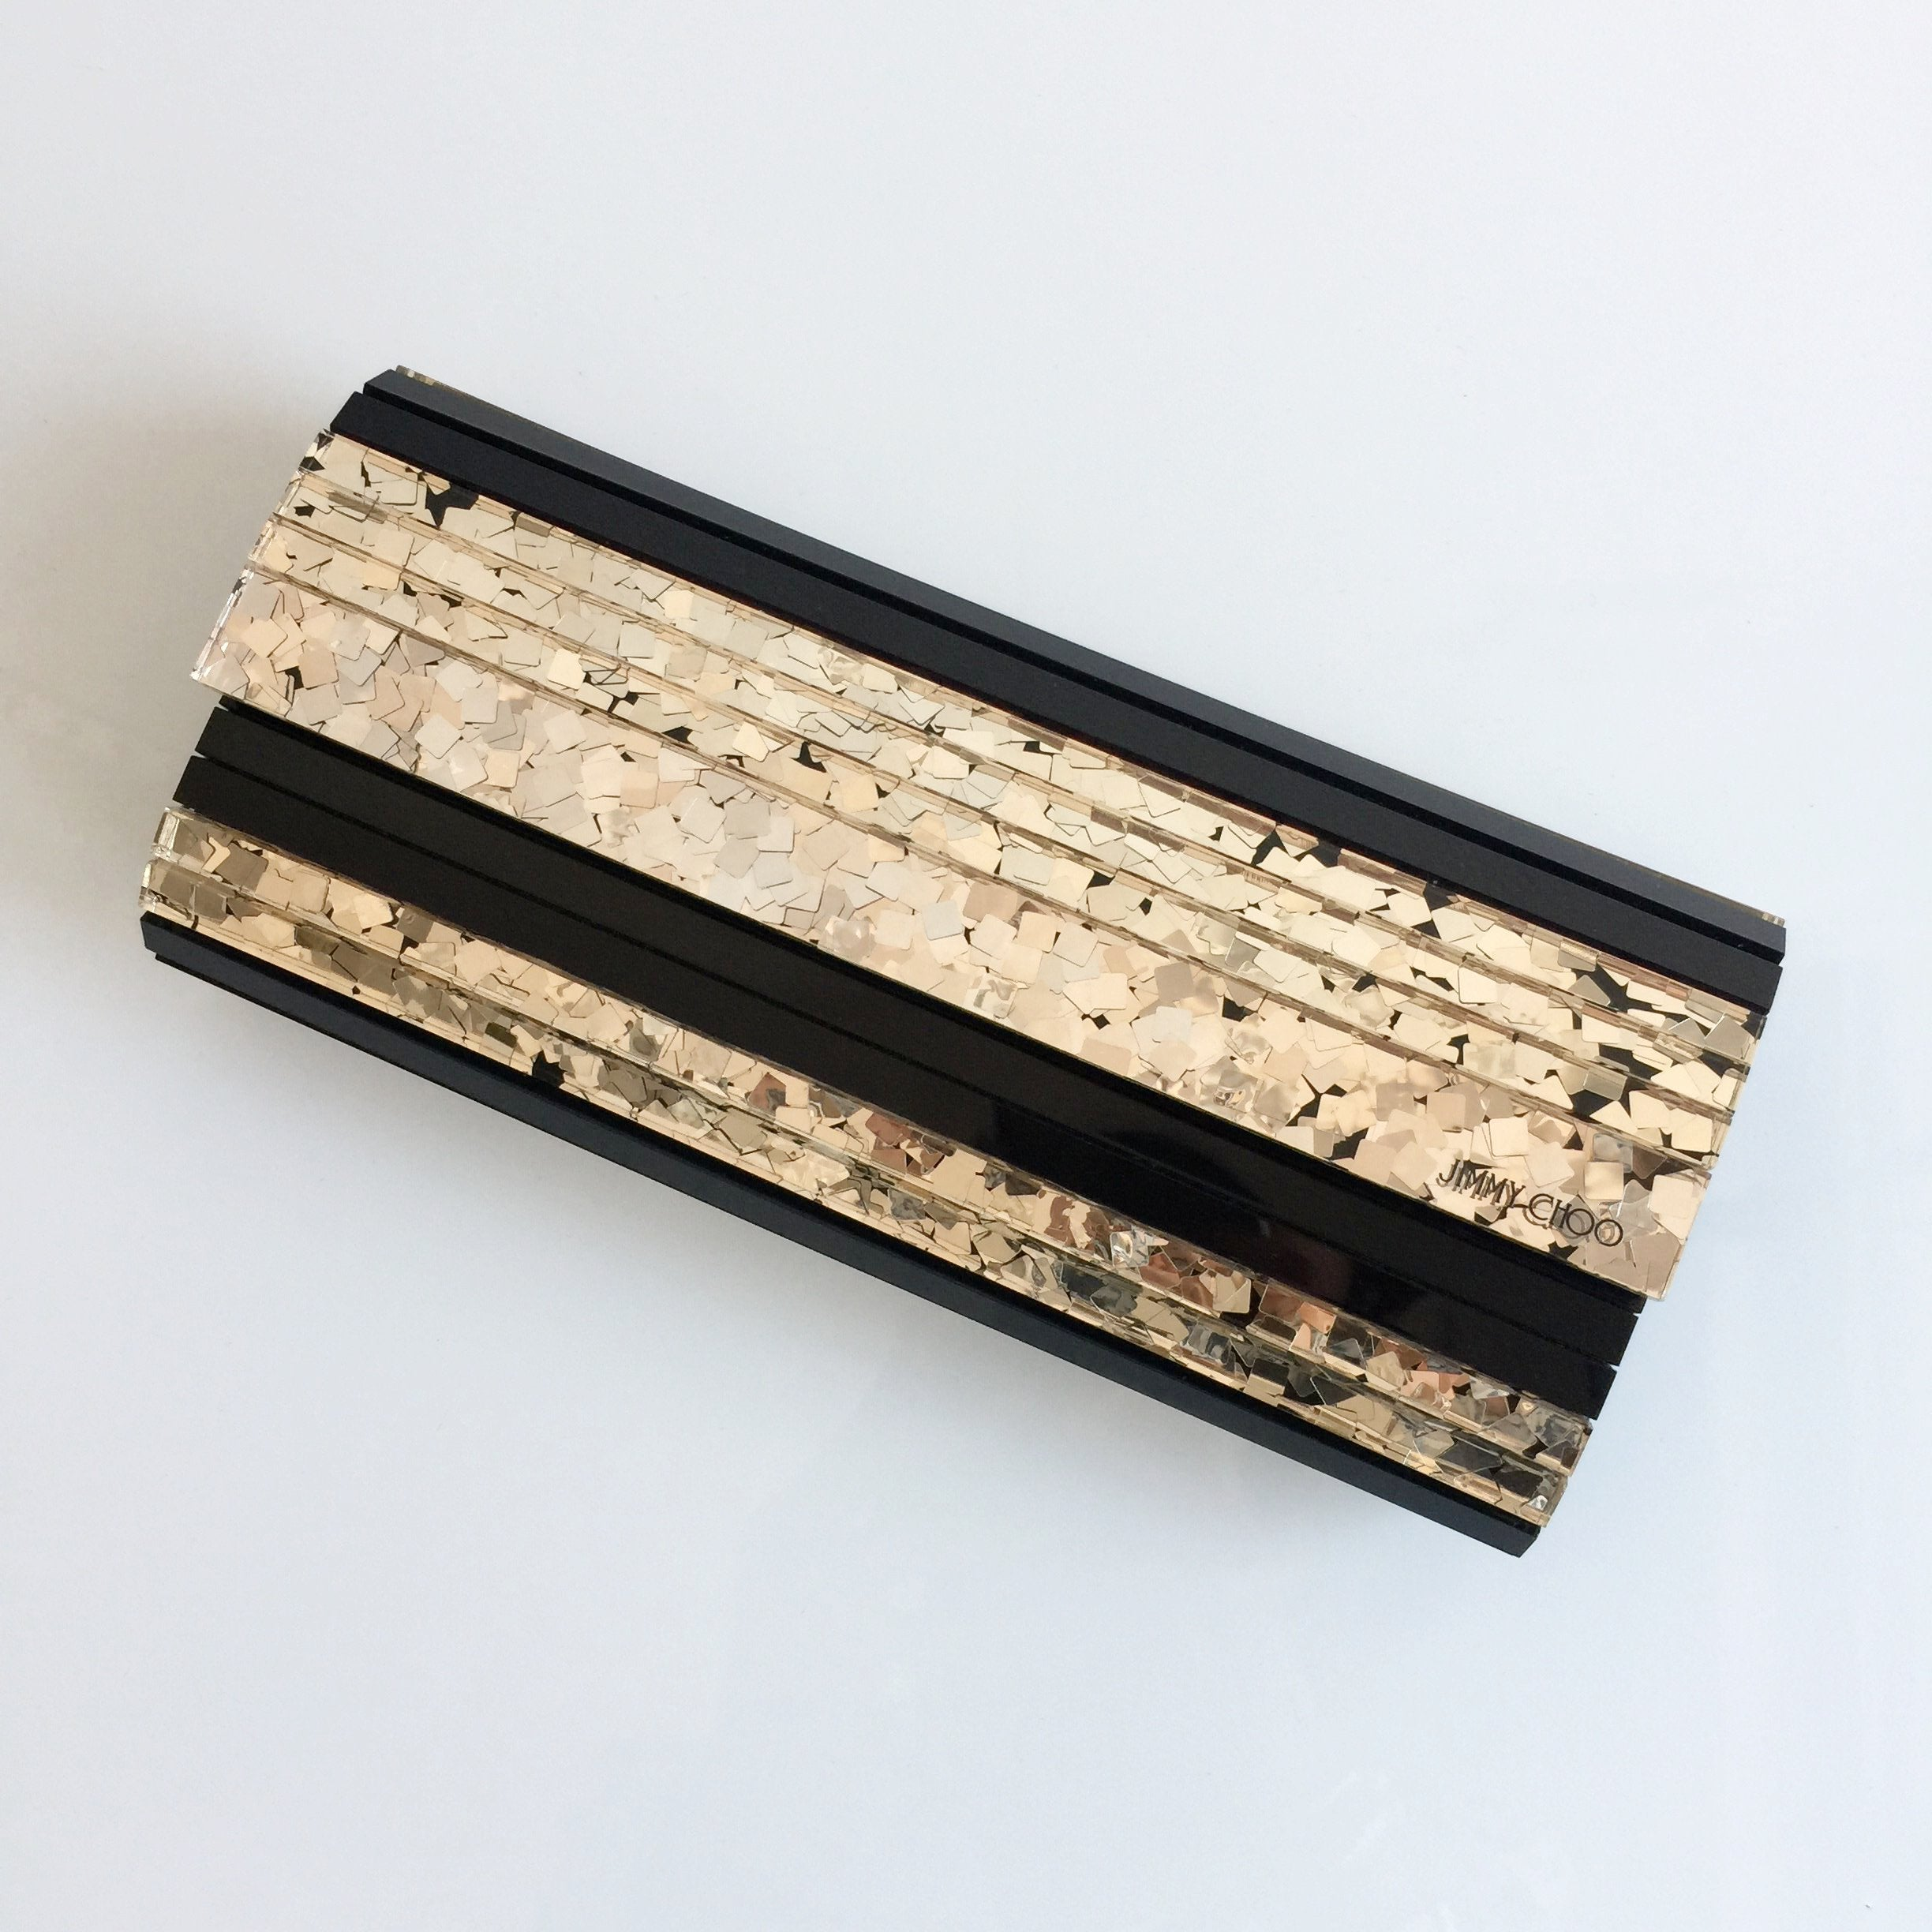 Authentic JIMMY CHOO Sweetie Clutch